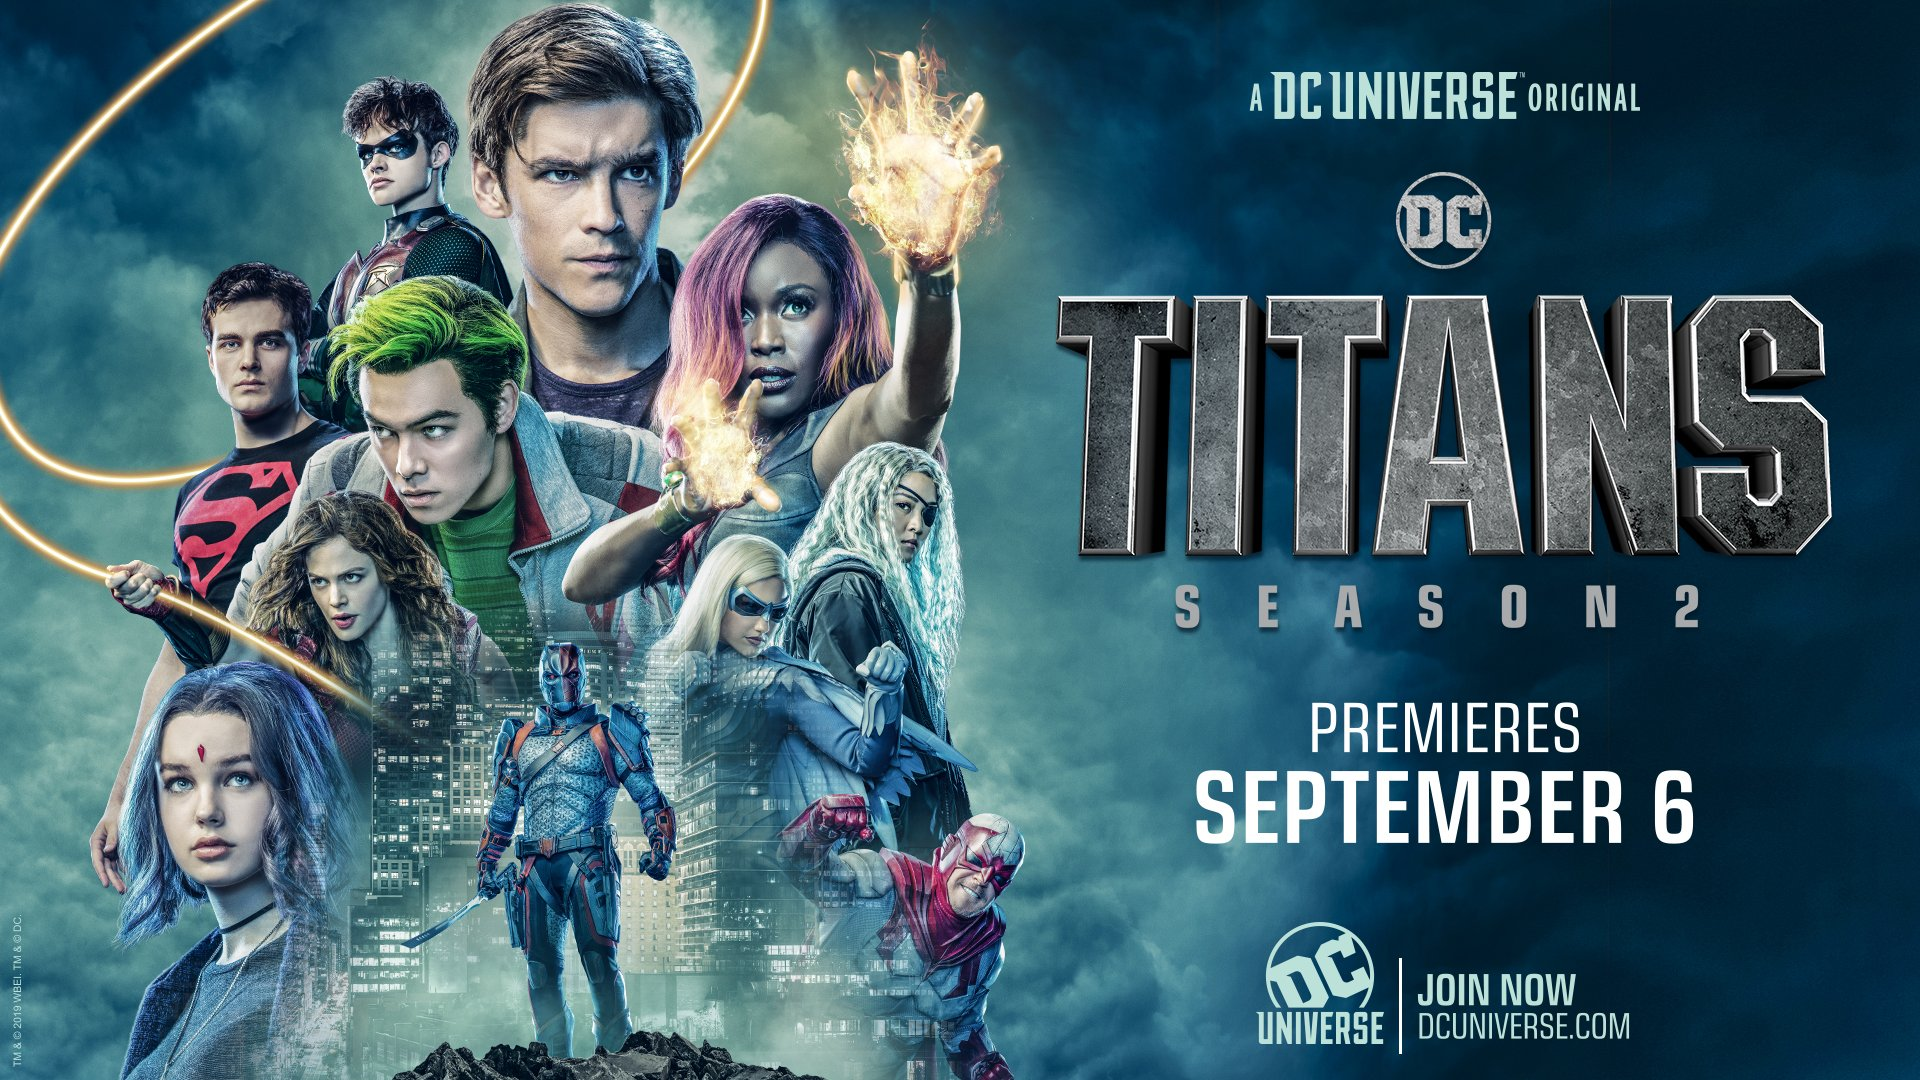 Titans Season 2 Poster Banner Deathstroke No Unicorn Horn Images